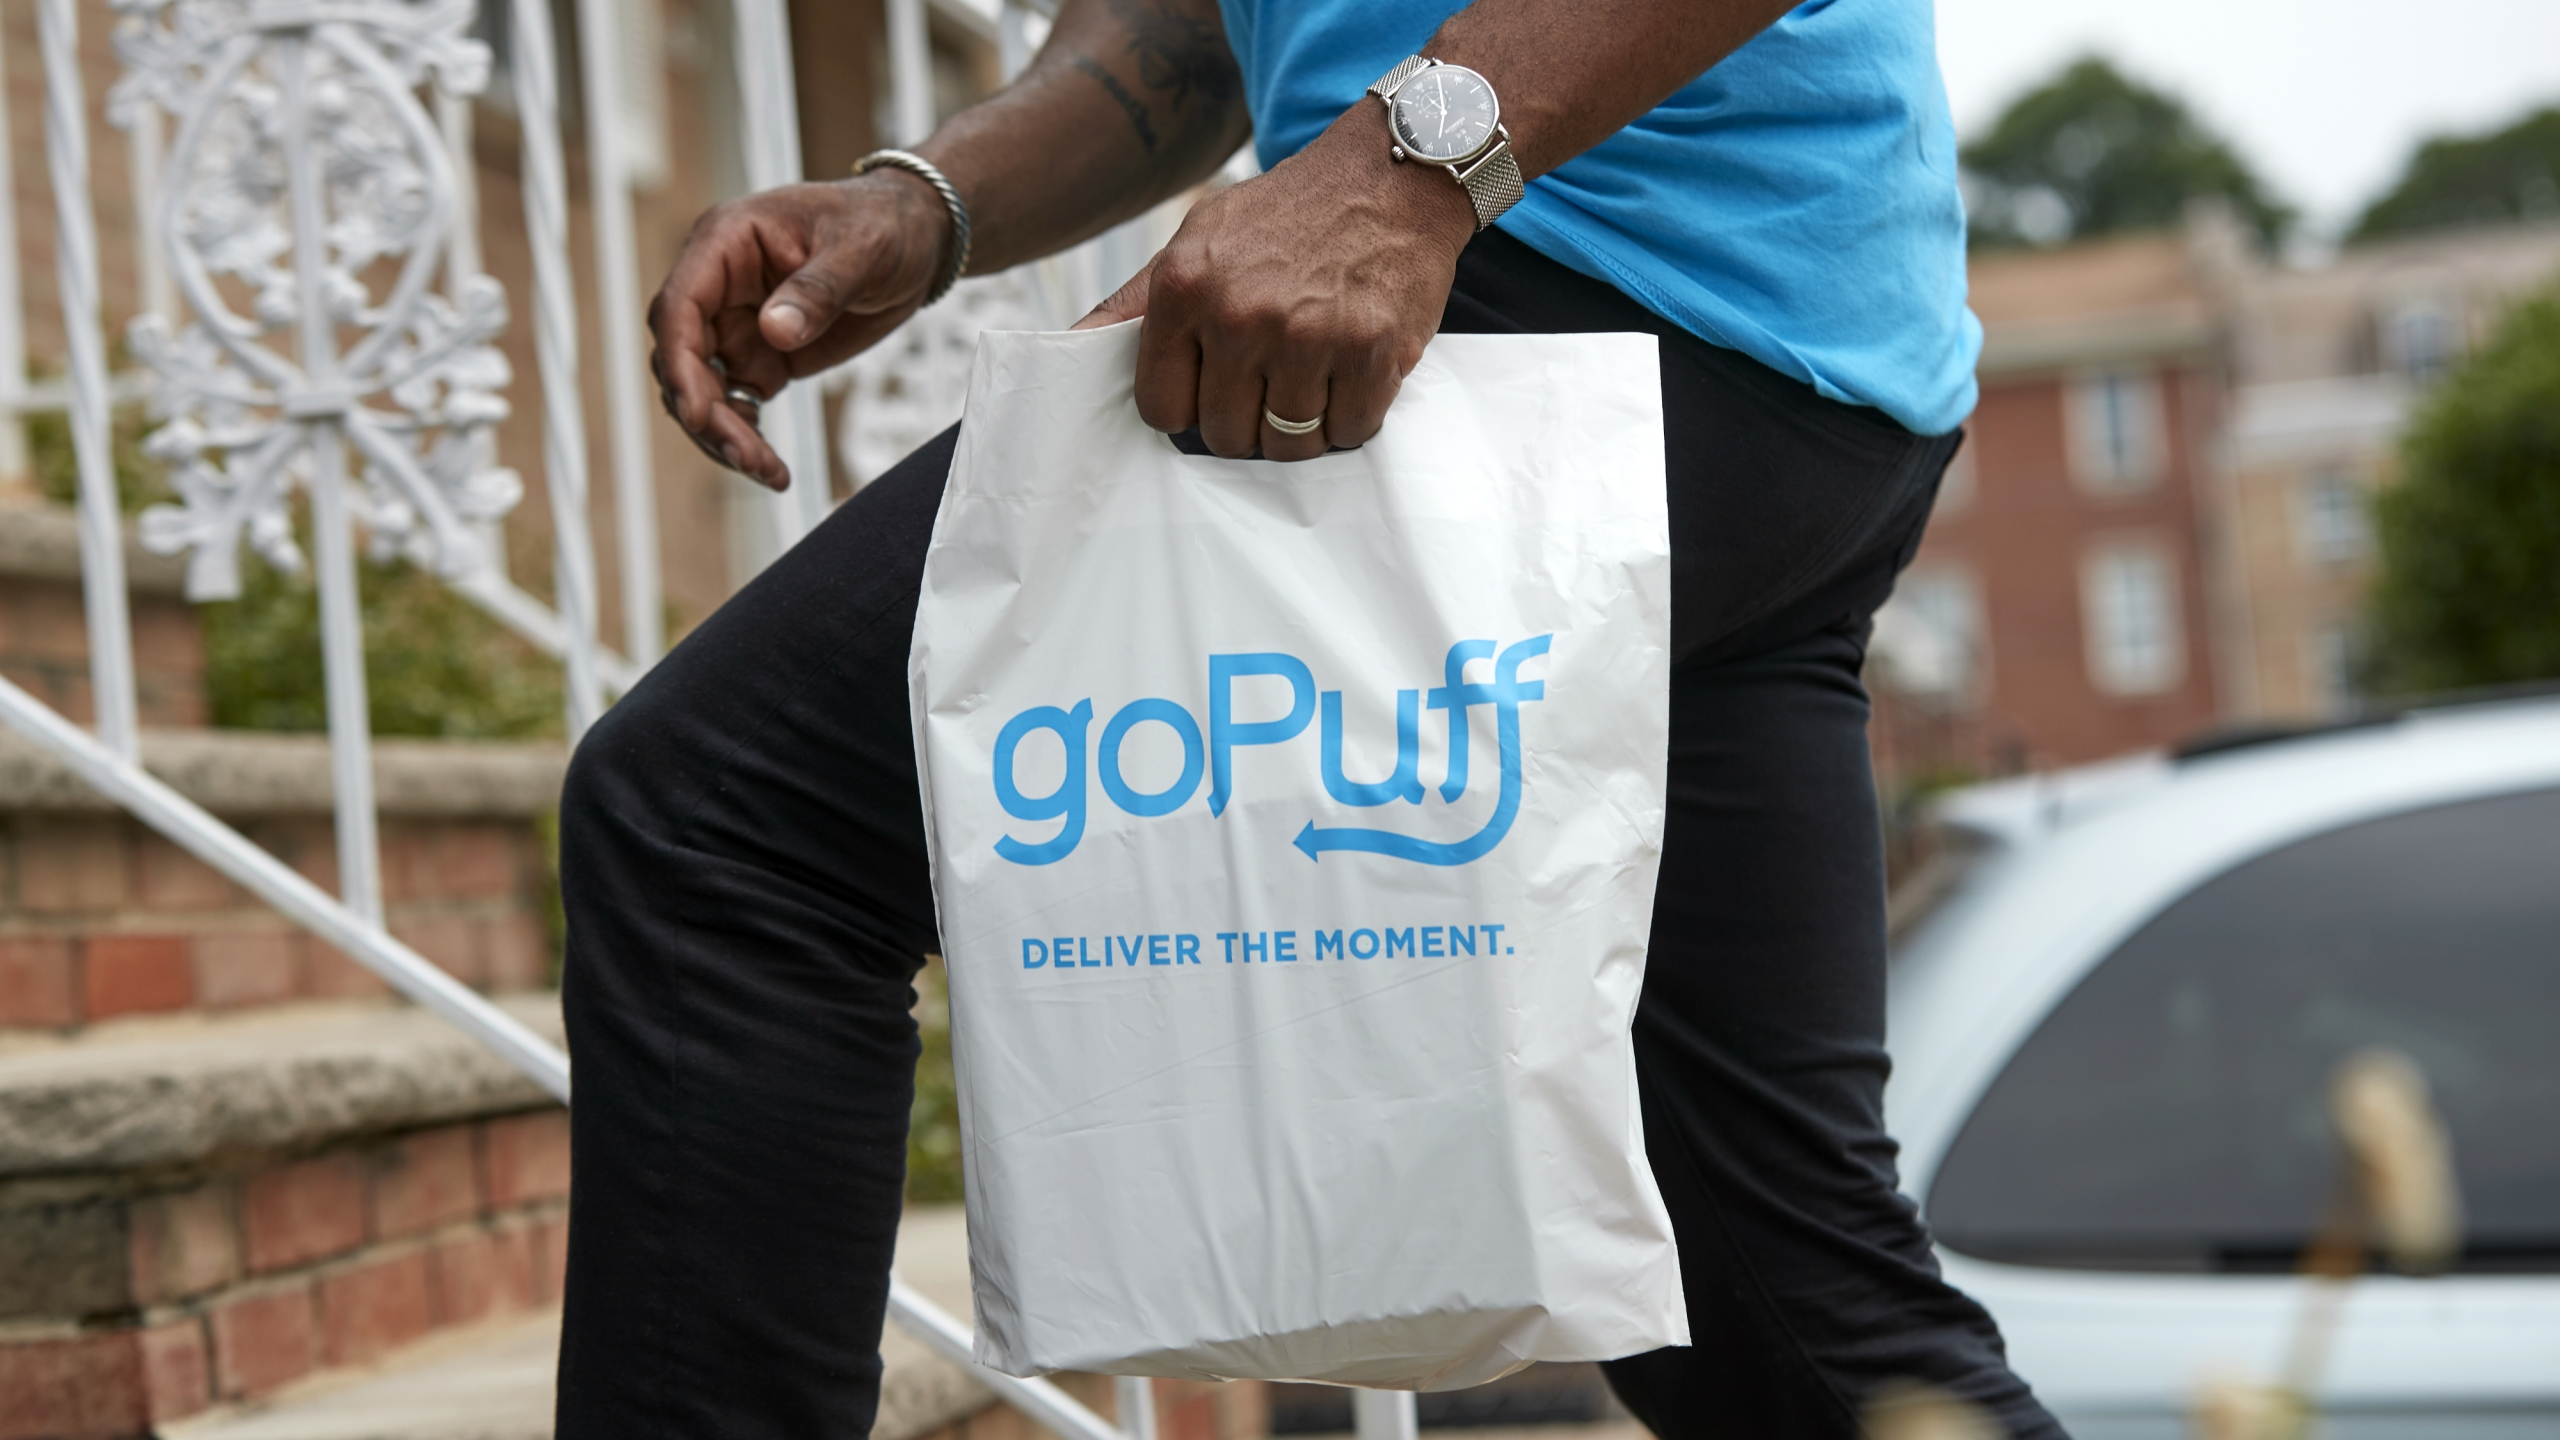 A GoPuff delivery arrives on the front steps